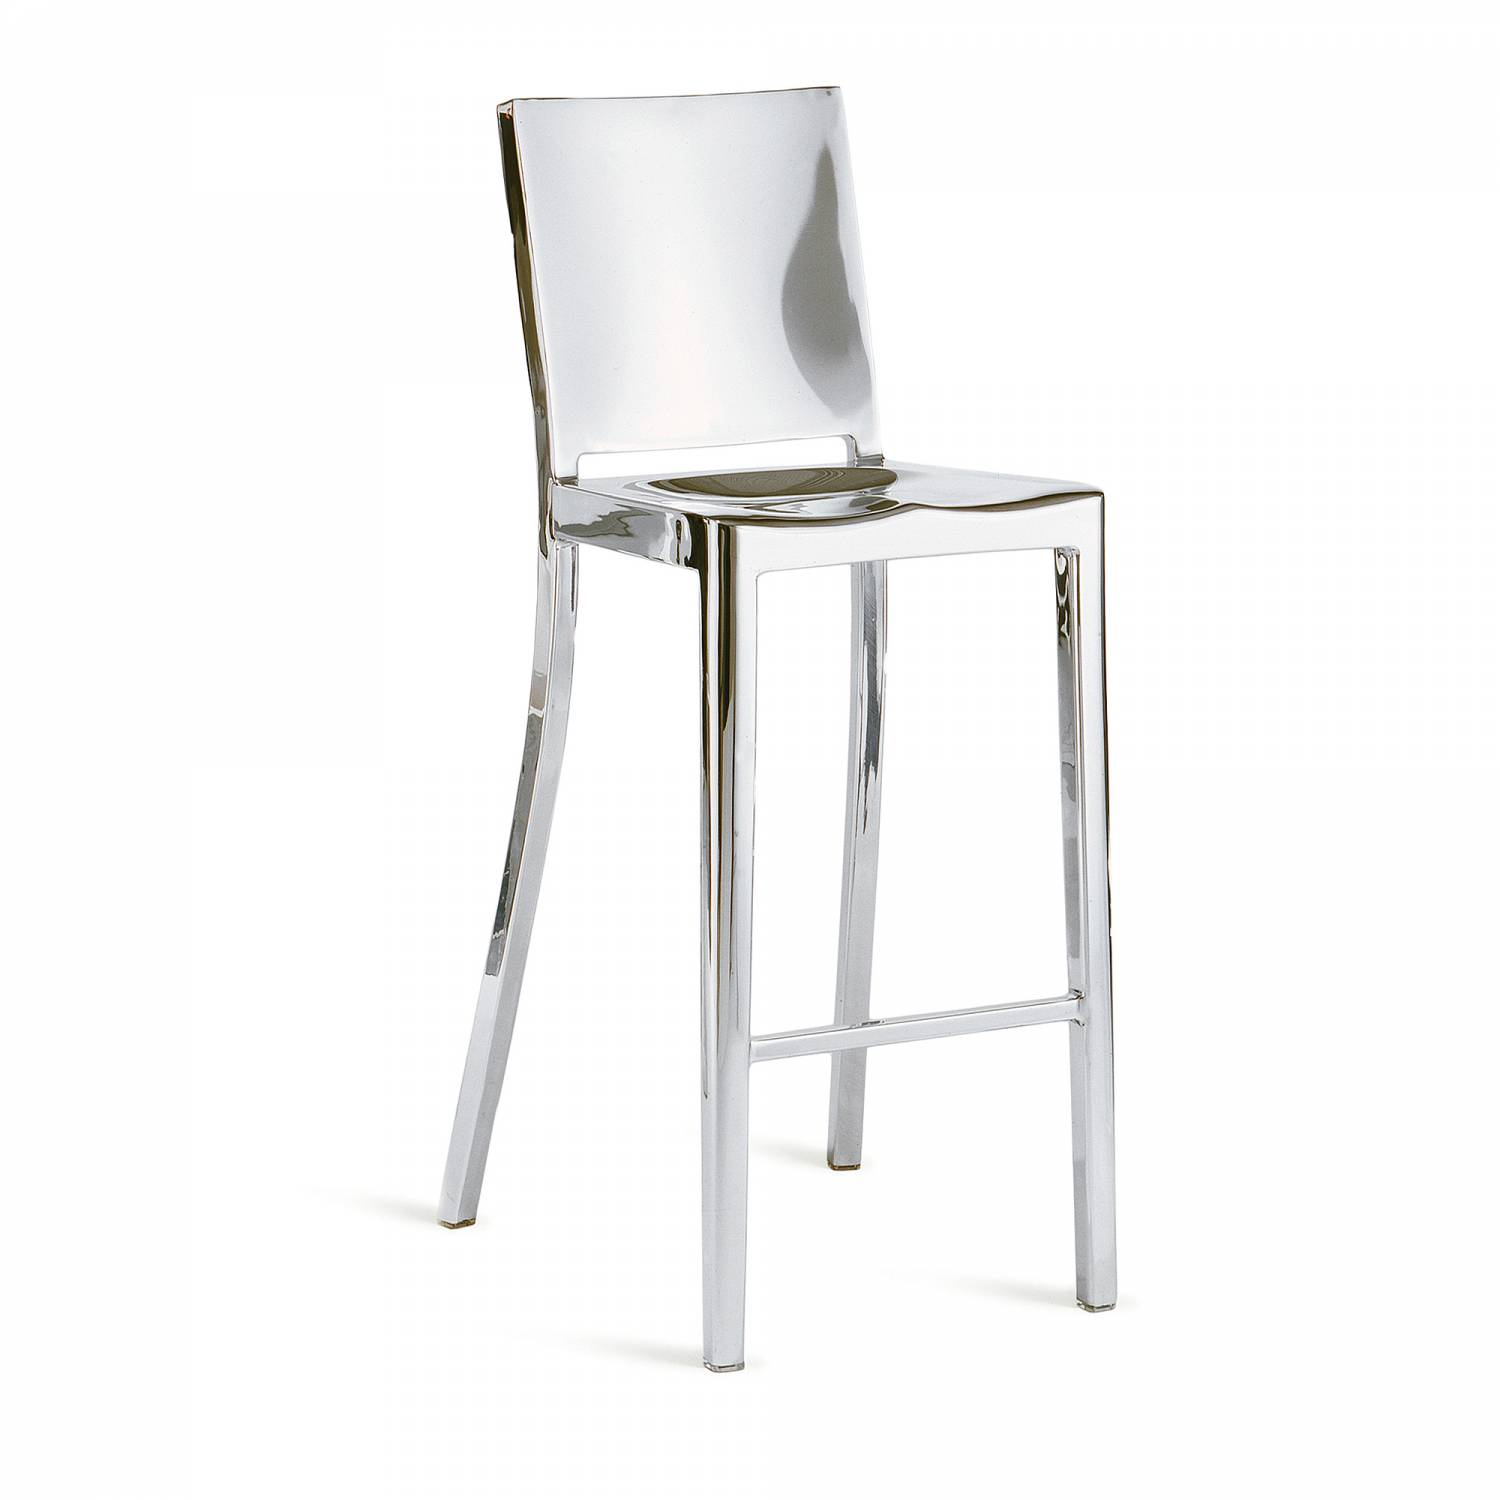 hudson stool hudson collection by emeco design philippe starck. Black Bedroom Furniture Sets. Home Design Ideas